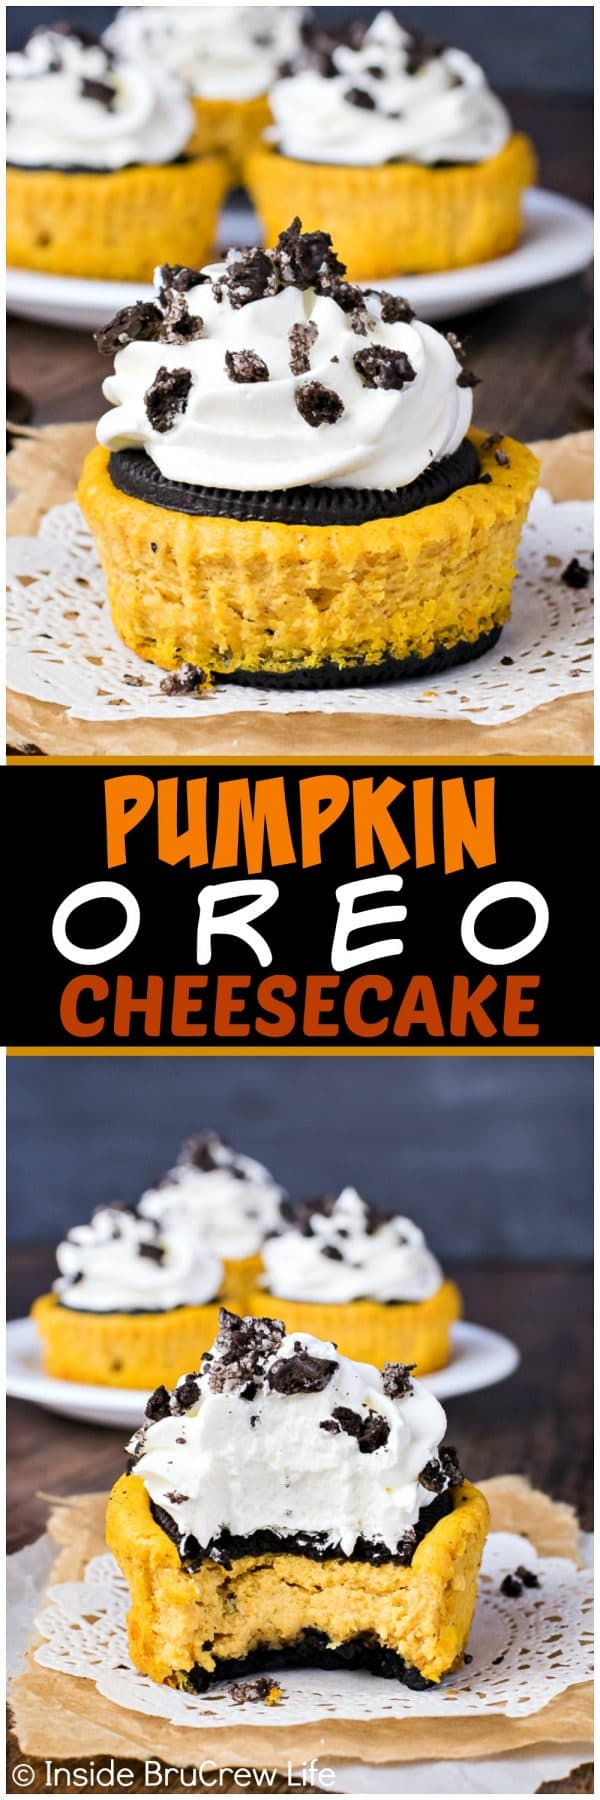 Two pictures of pumpkin oreo cheesecakes collaged together with a black text box